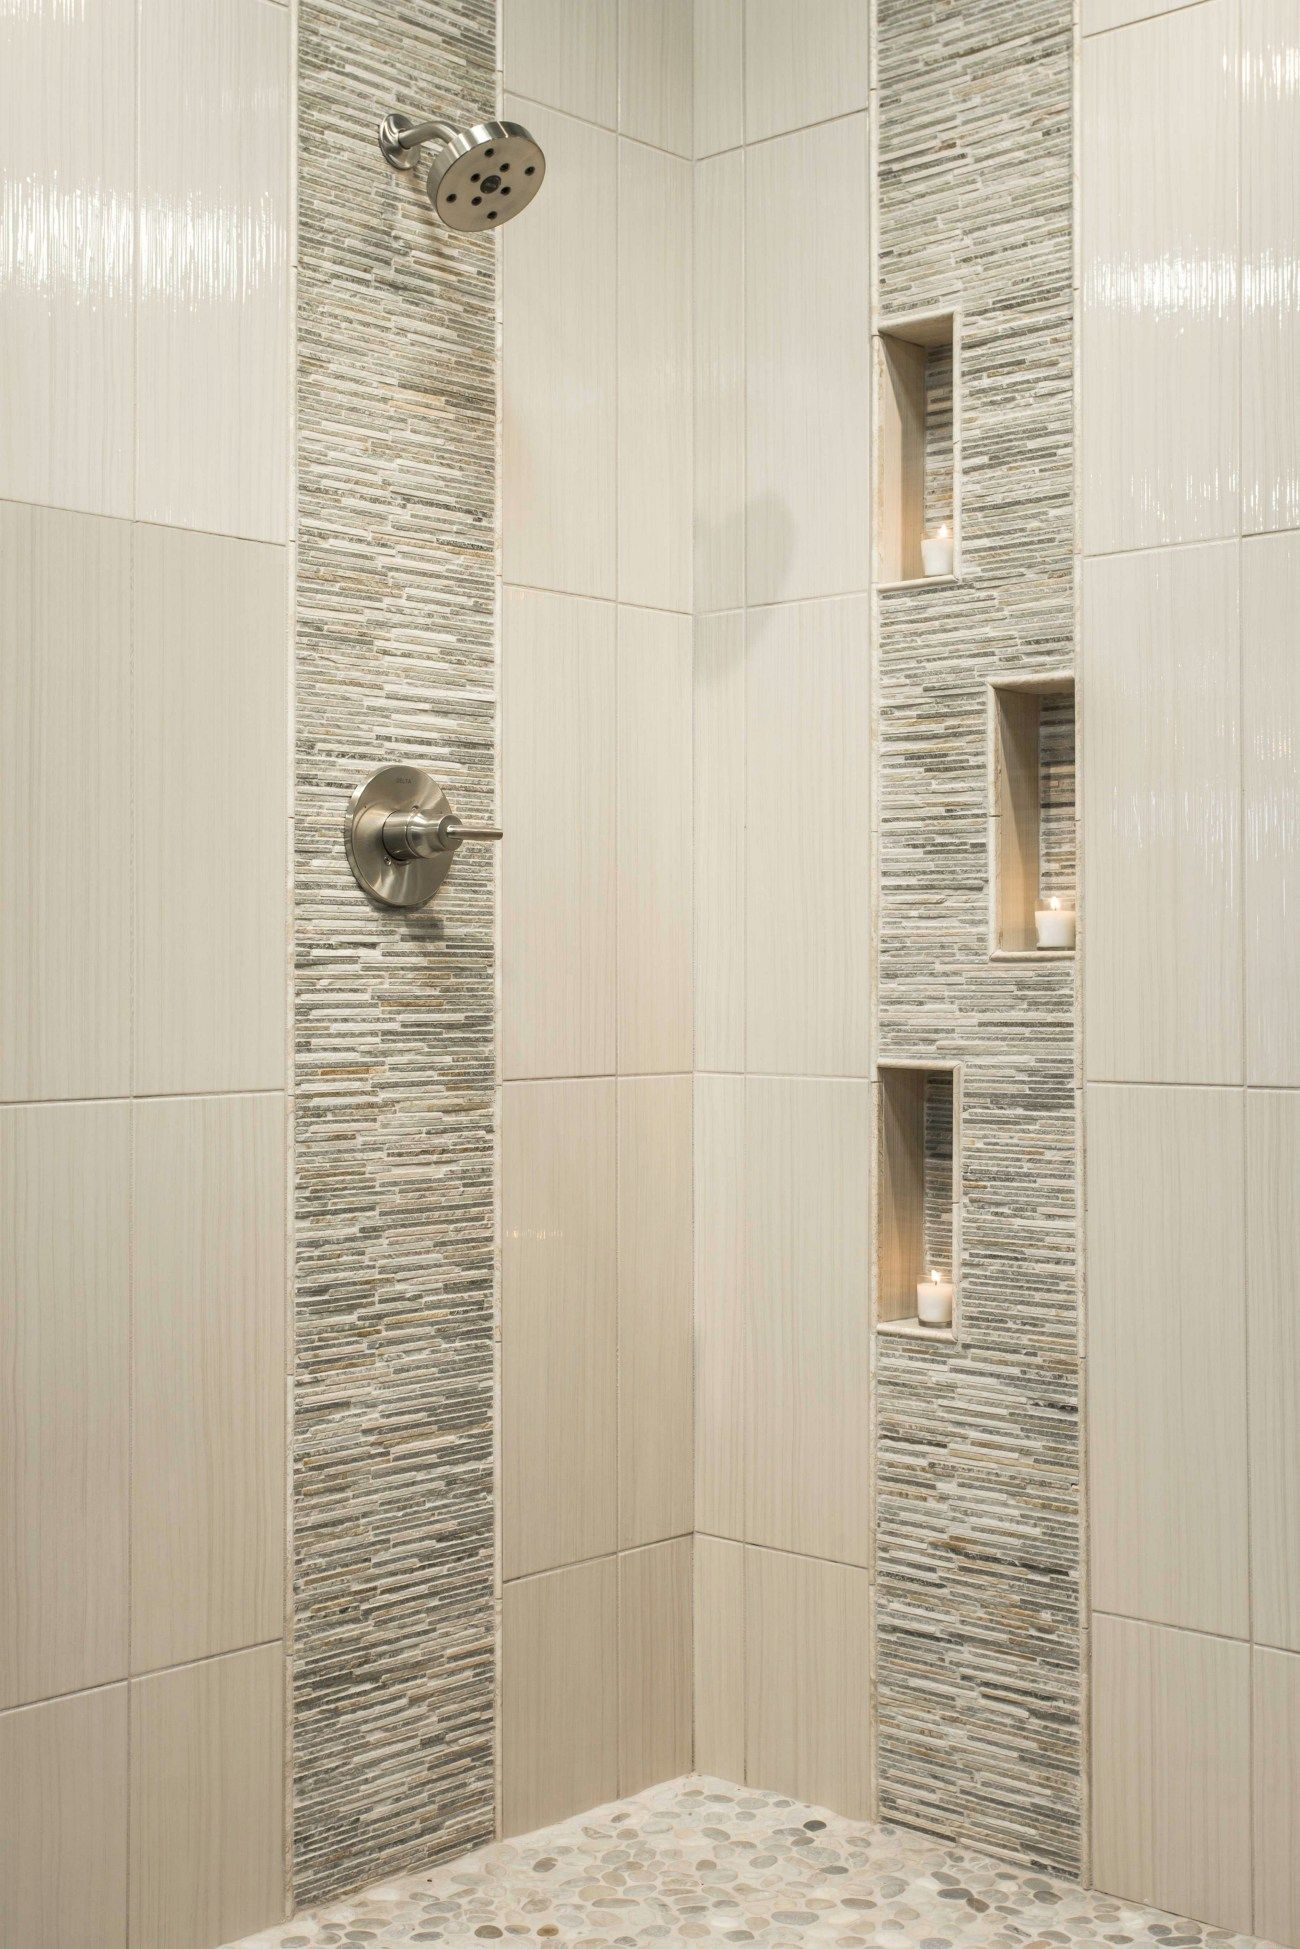 75 bathroom tiles ideas for small bathrooms (7) | Tile ideas ...